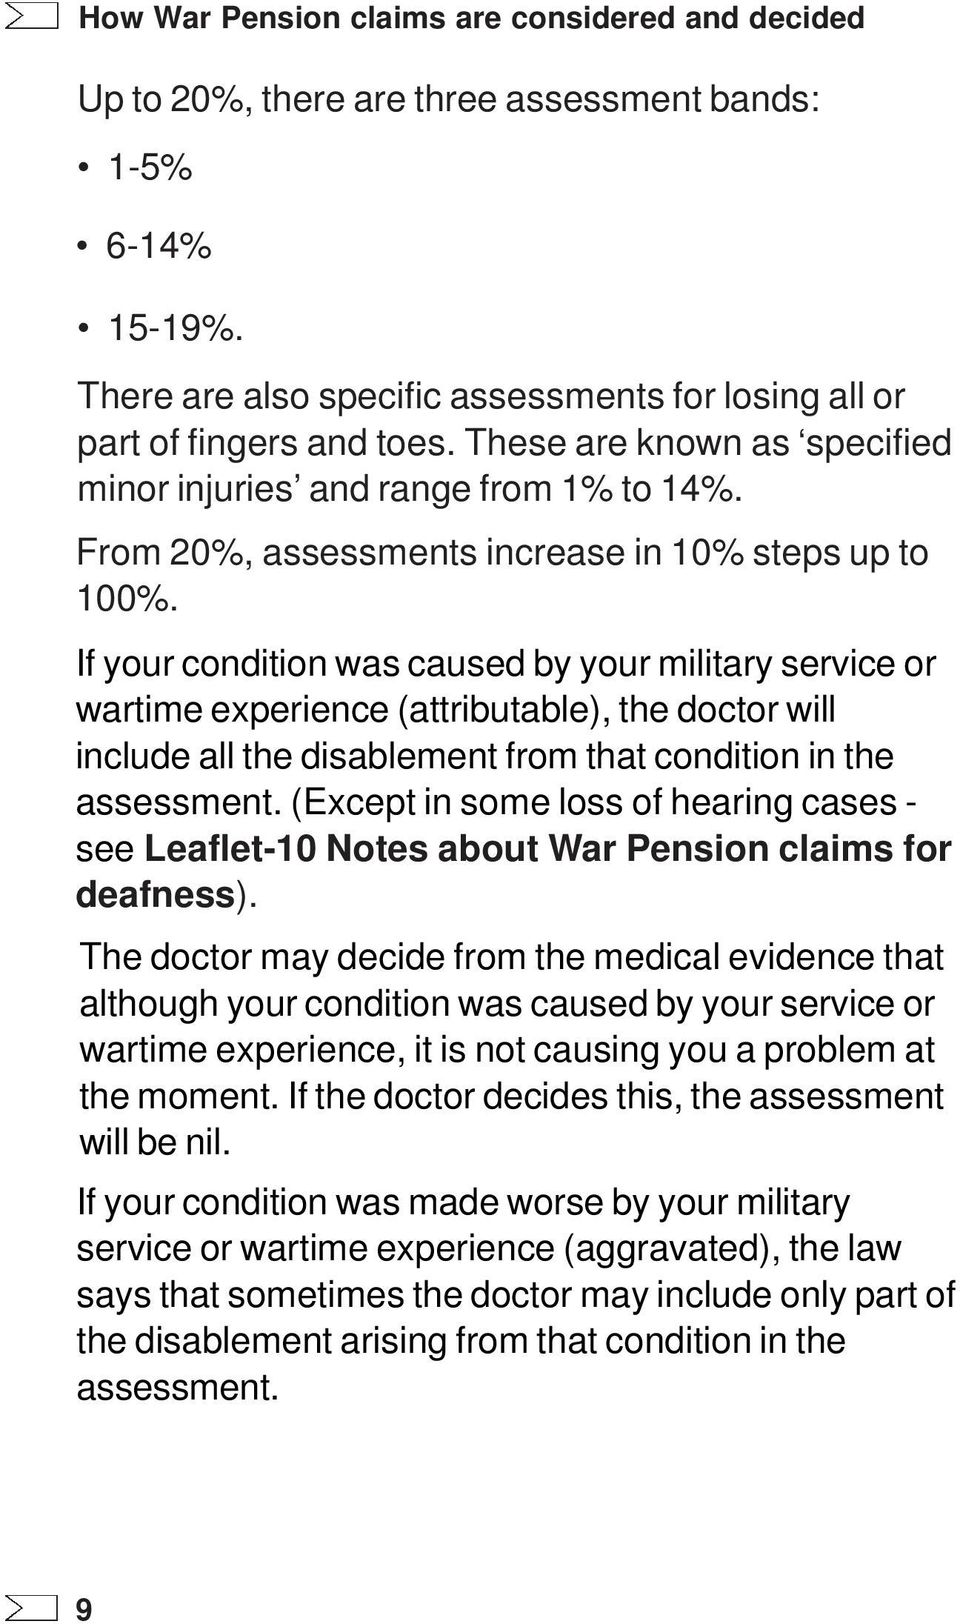 If your condition was caused by your military service or wartime experience (attributable), the doctor will include all the disablement from that condition in the assessment.